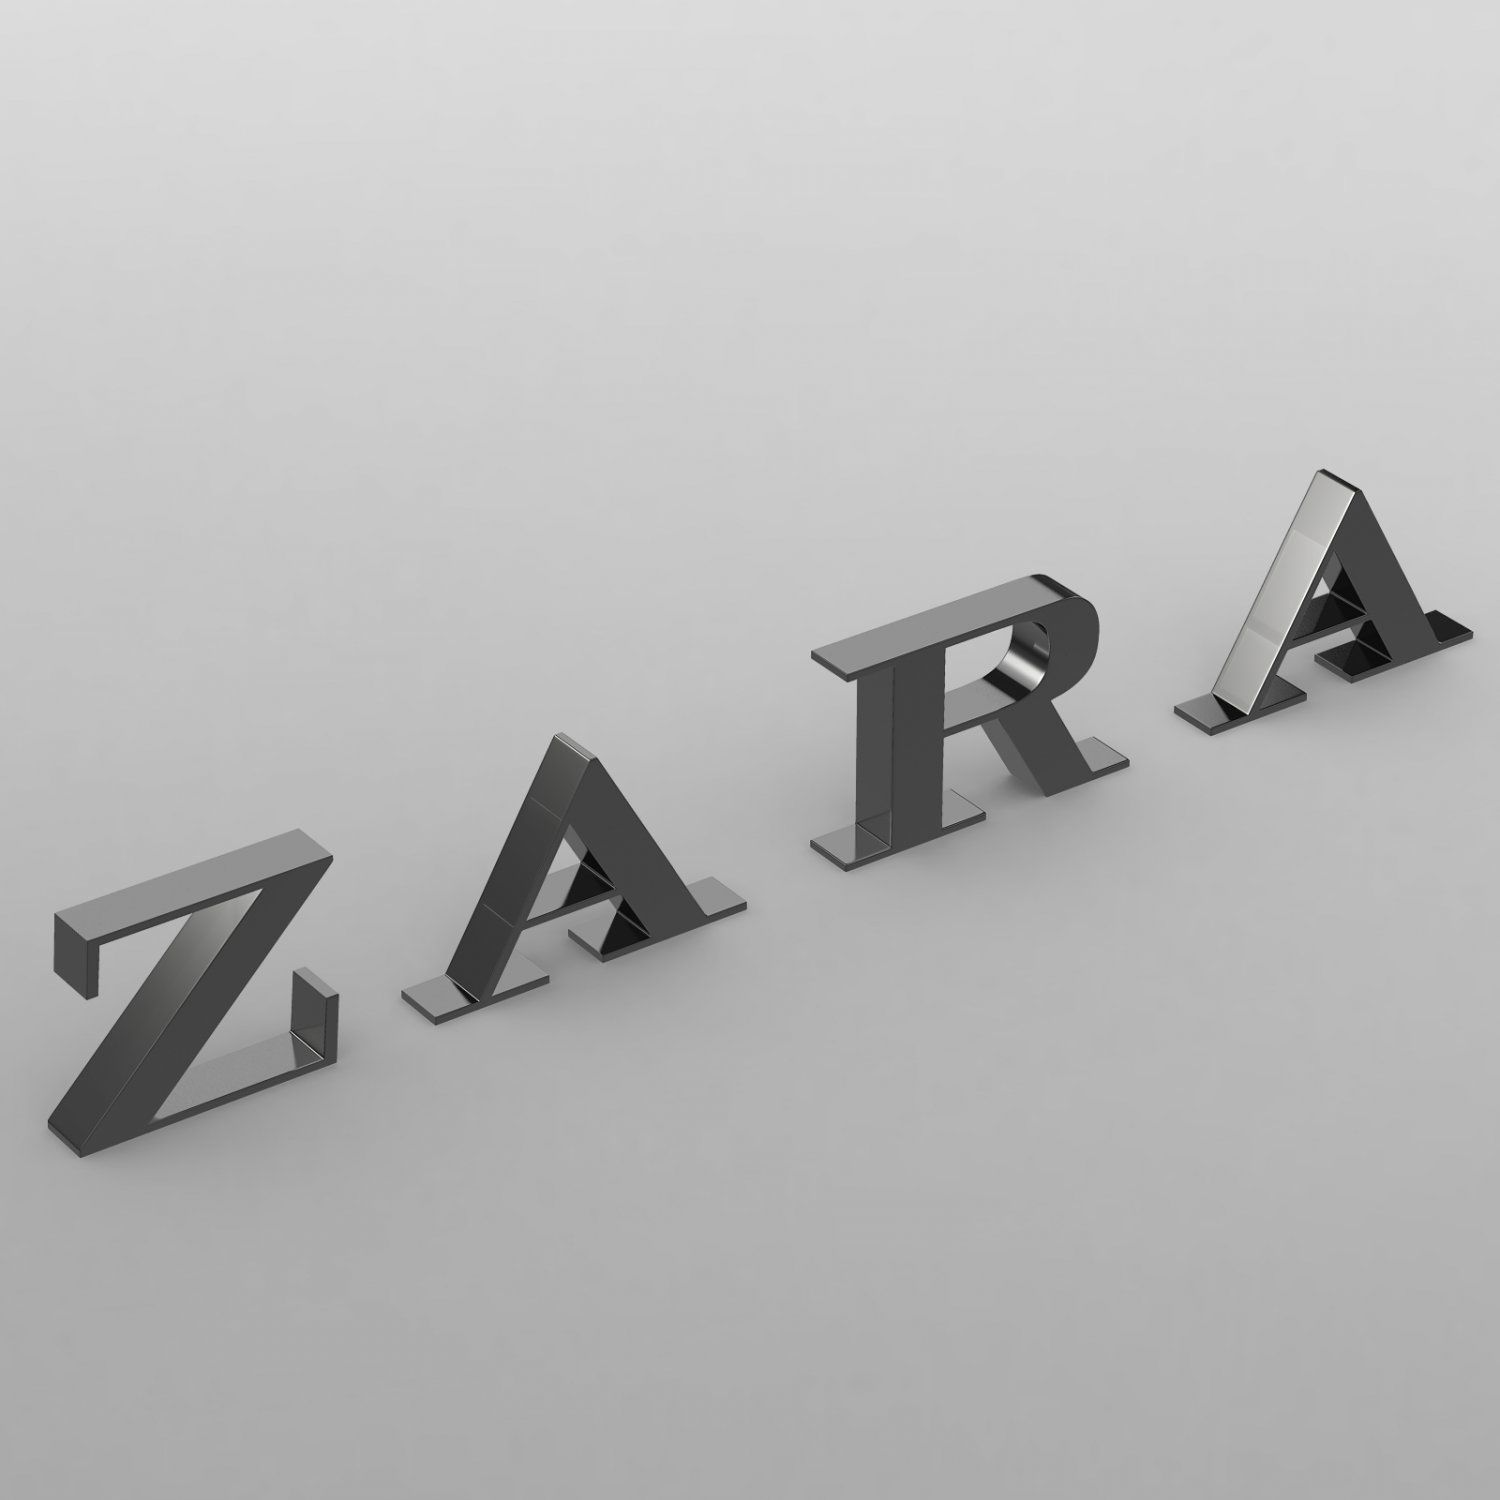 Zara Logo - Zara logo 3D Model in Clothing 3DExport